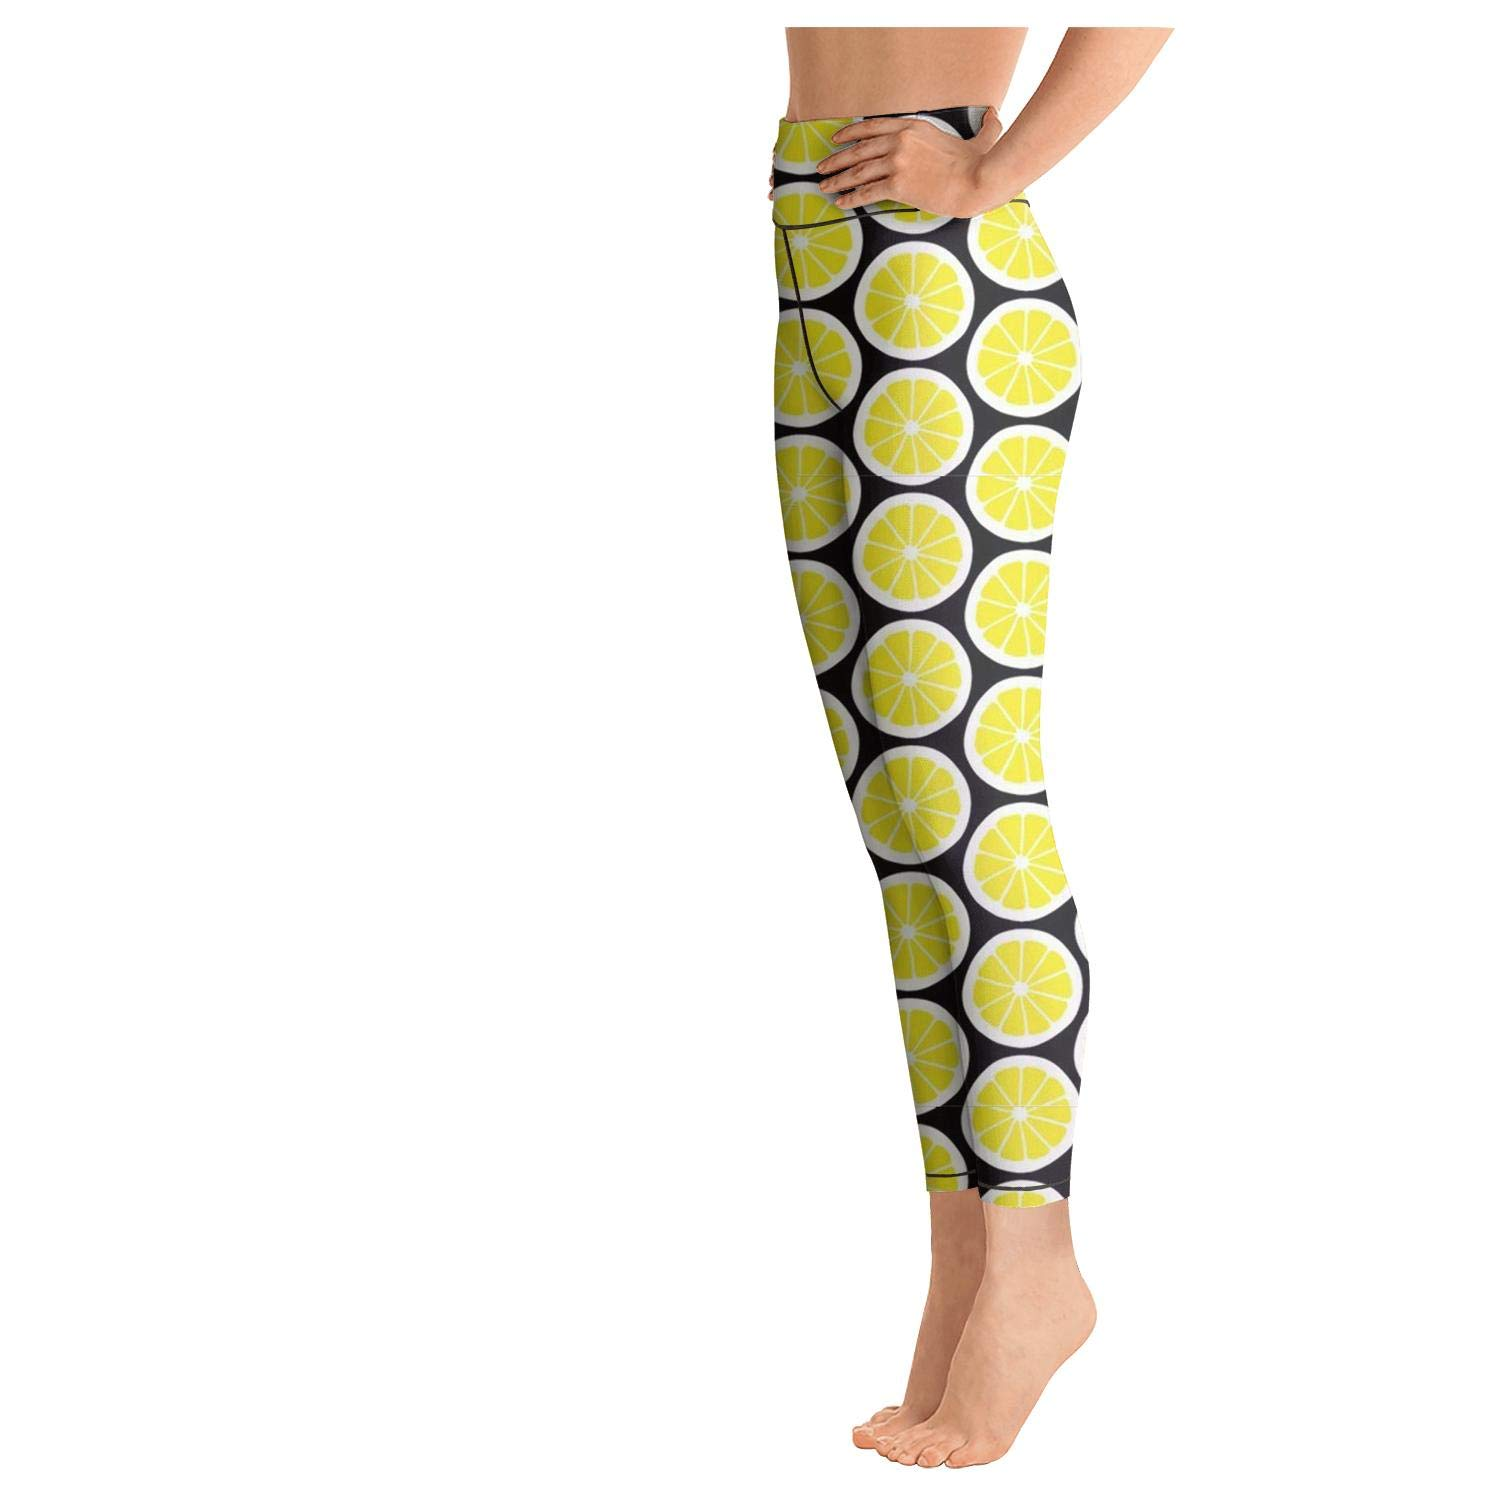 AWAWE Yummy Fruit Lemon Legging Pants Fitness Clothing